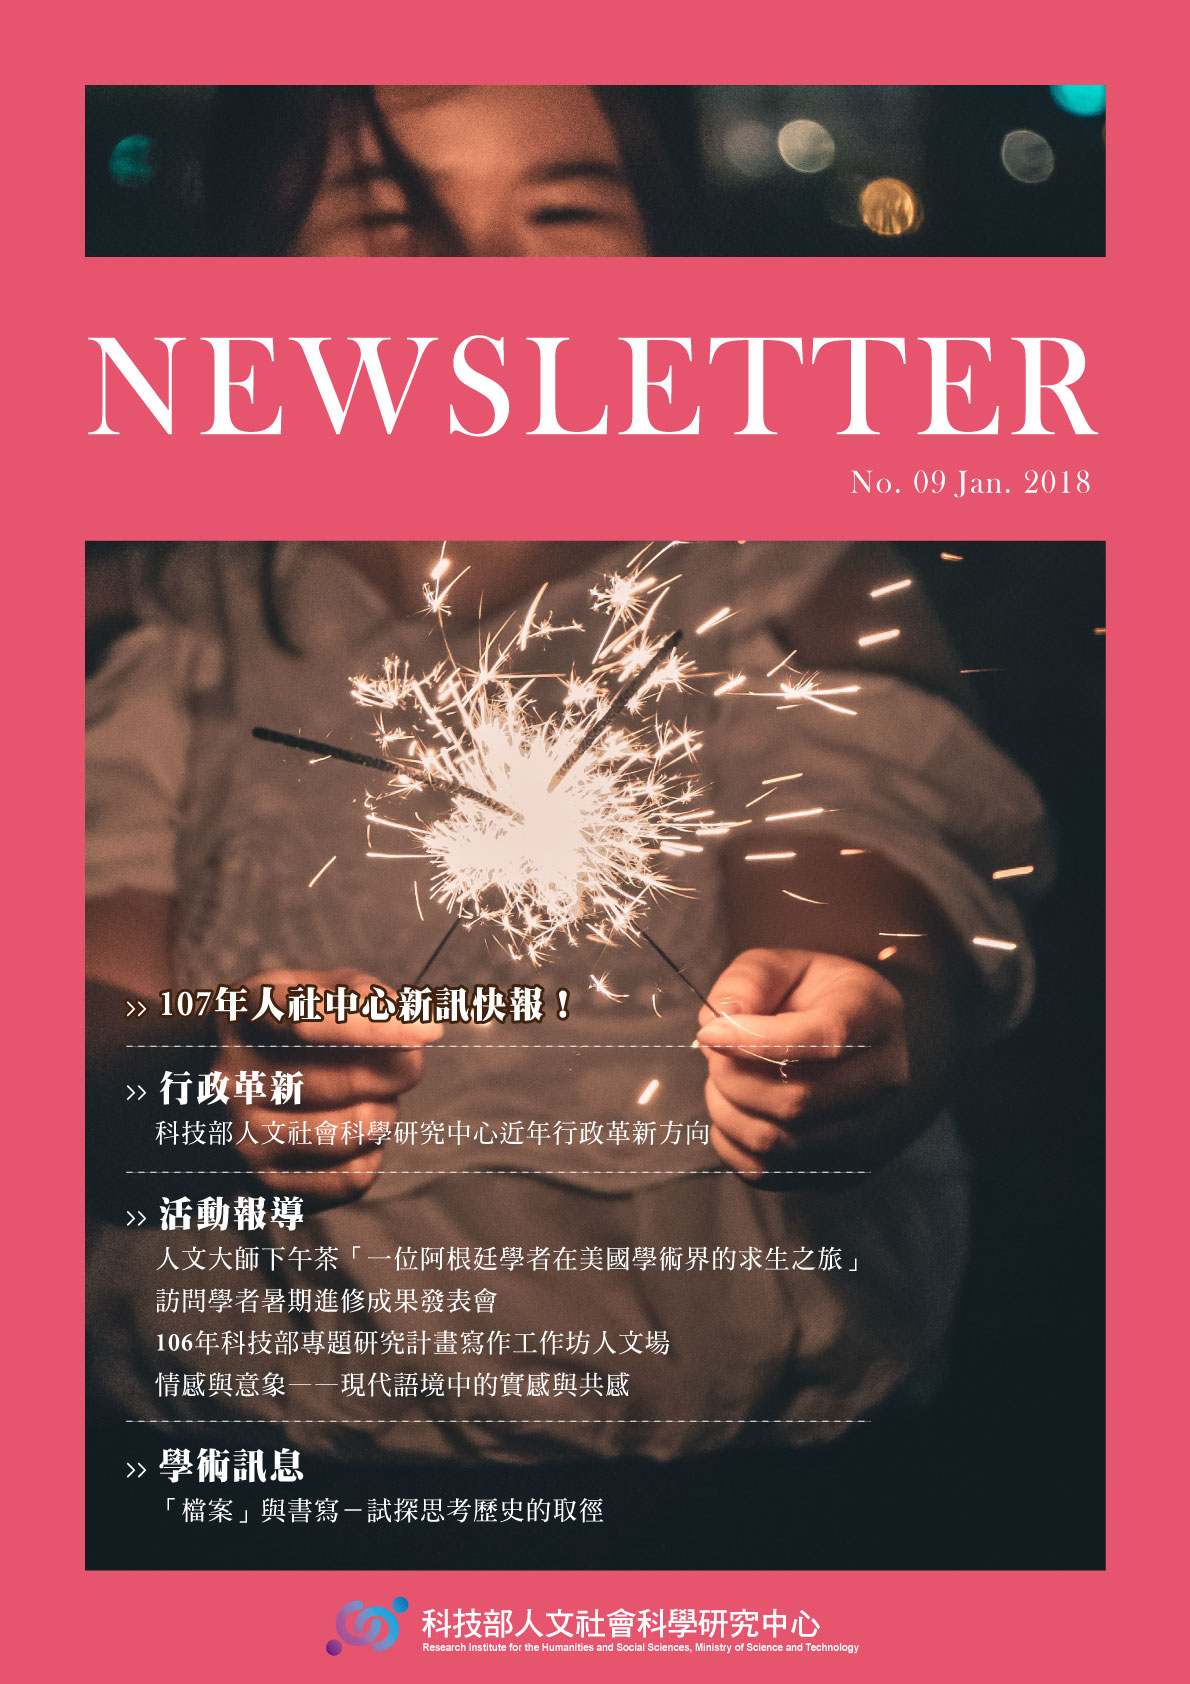 RIHSS Newsletter No. 09